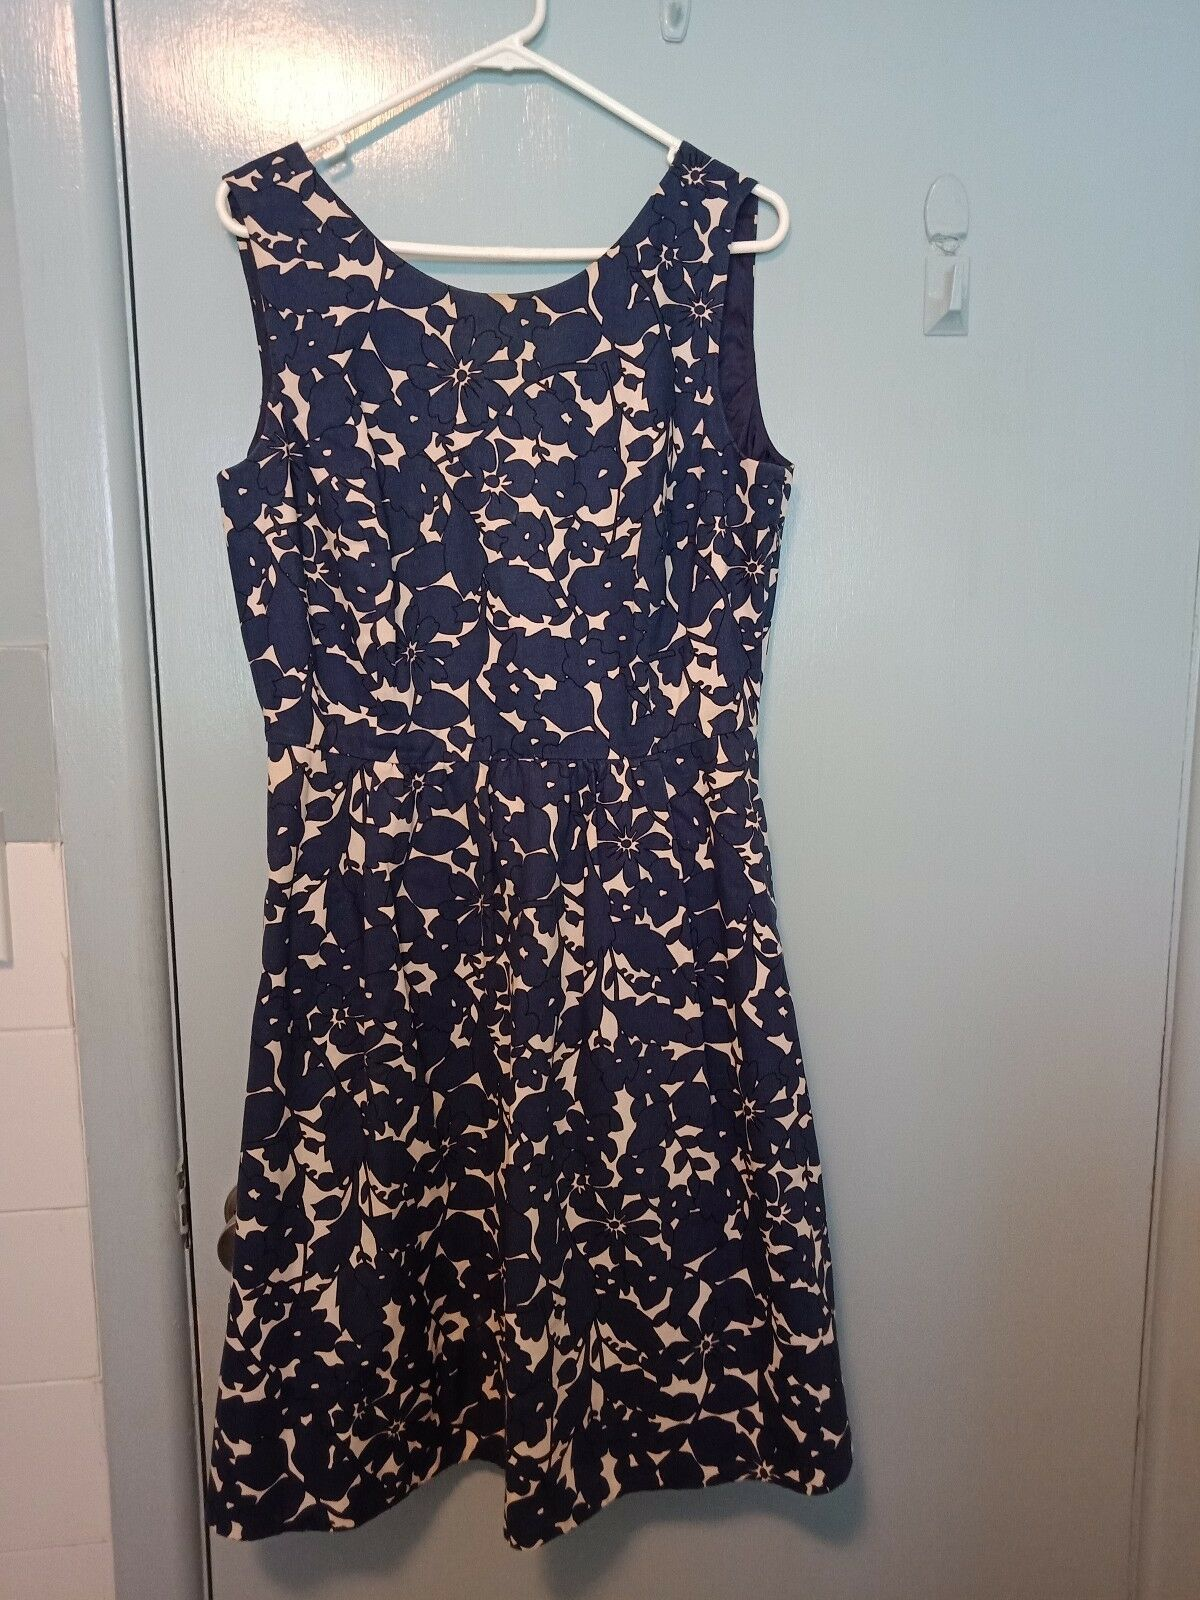 Sportscraft navy and white dress in size 12